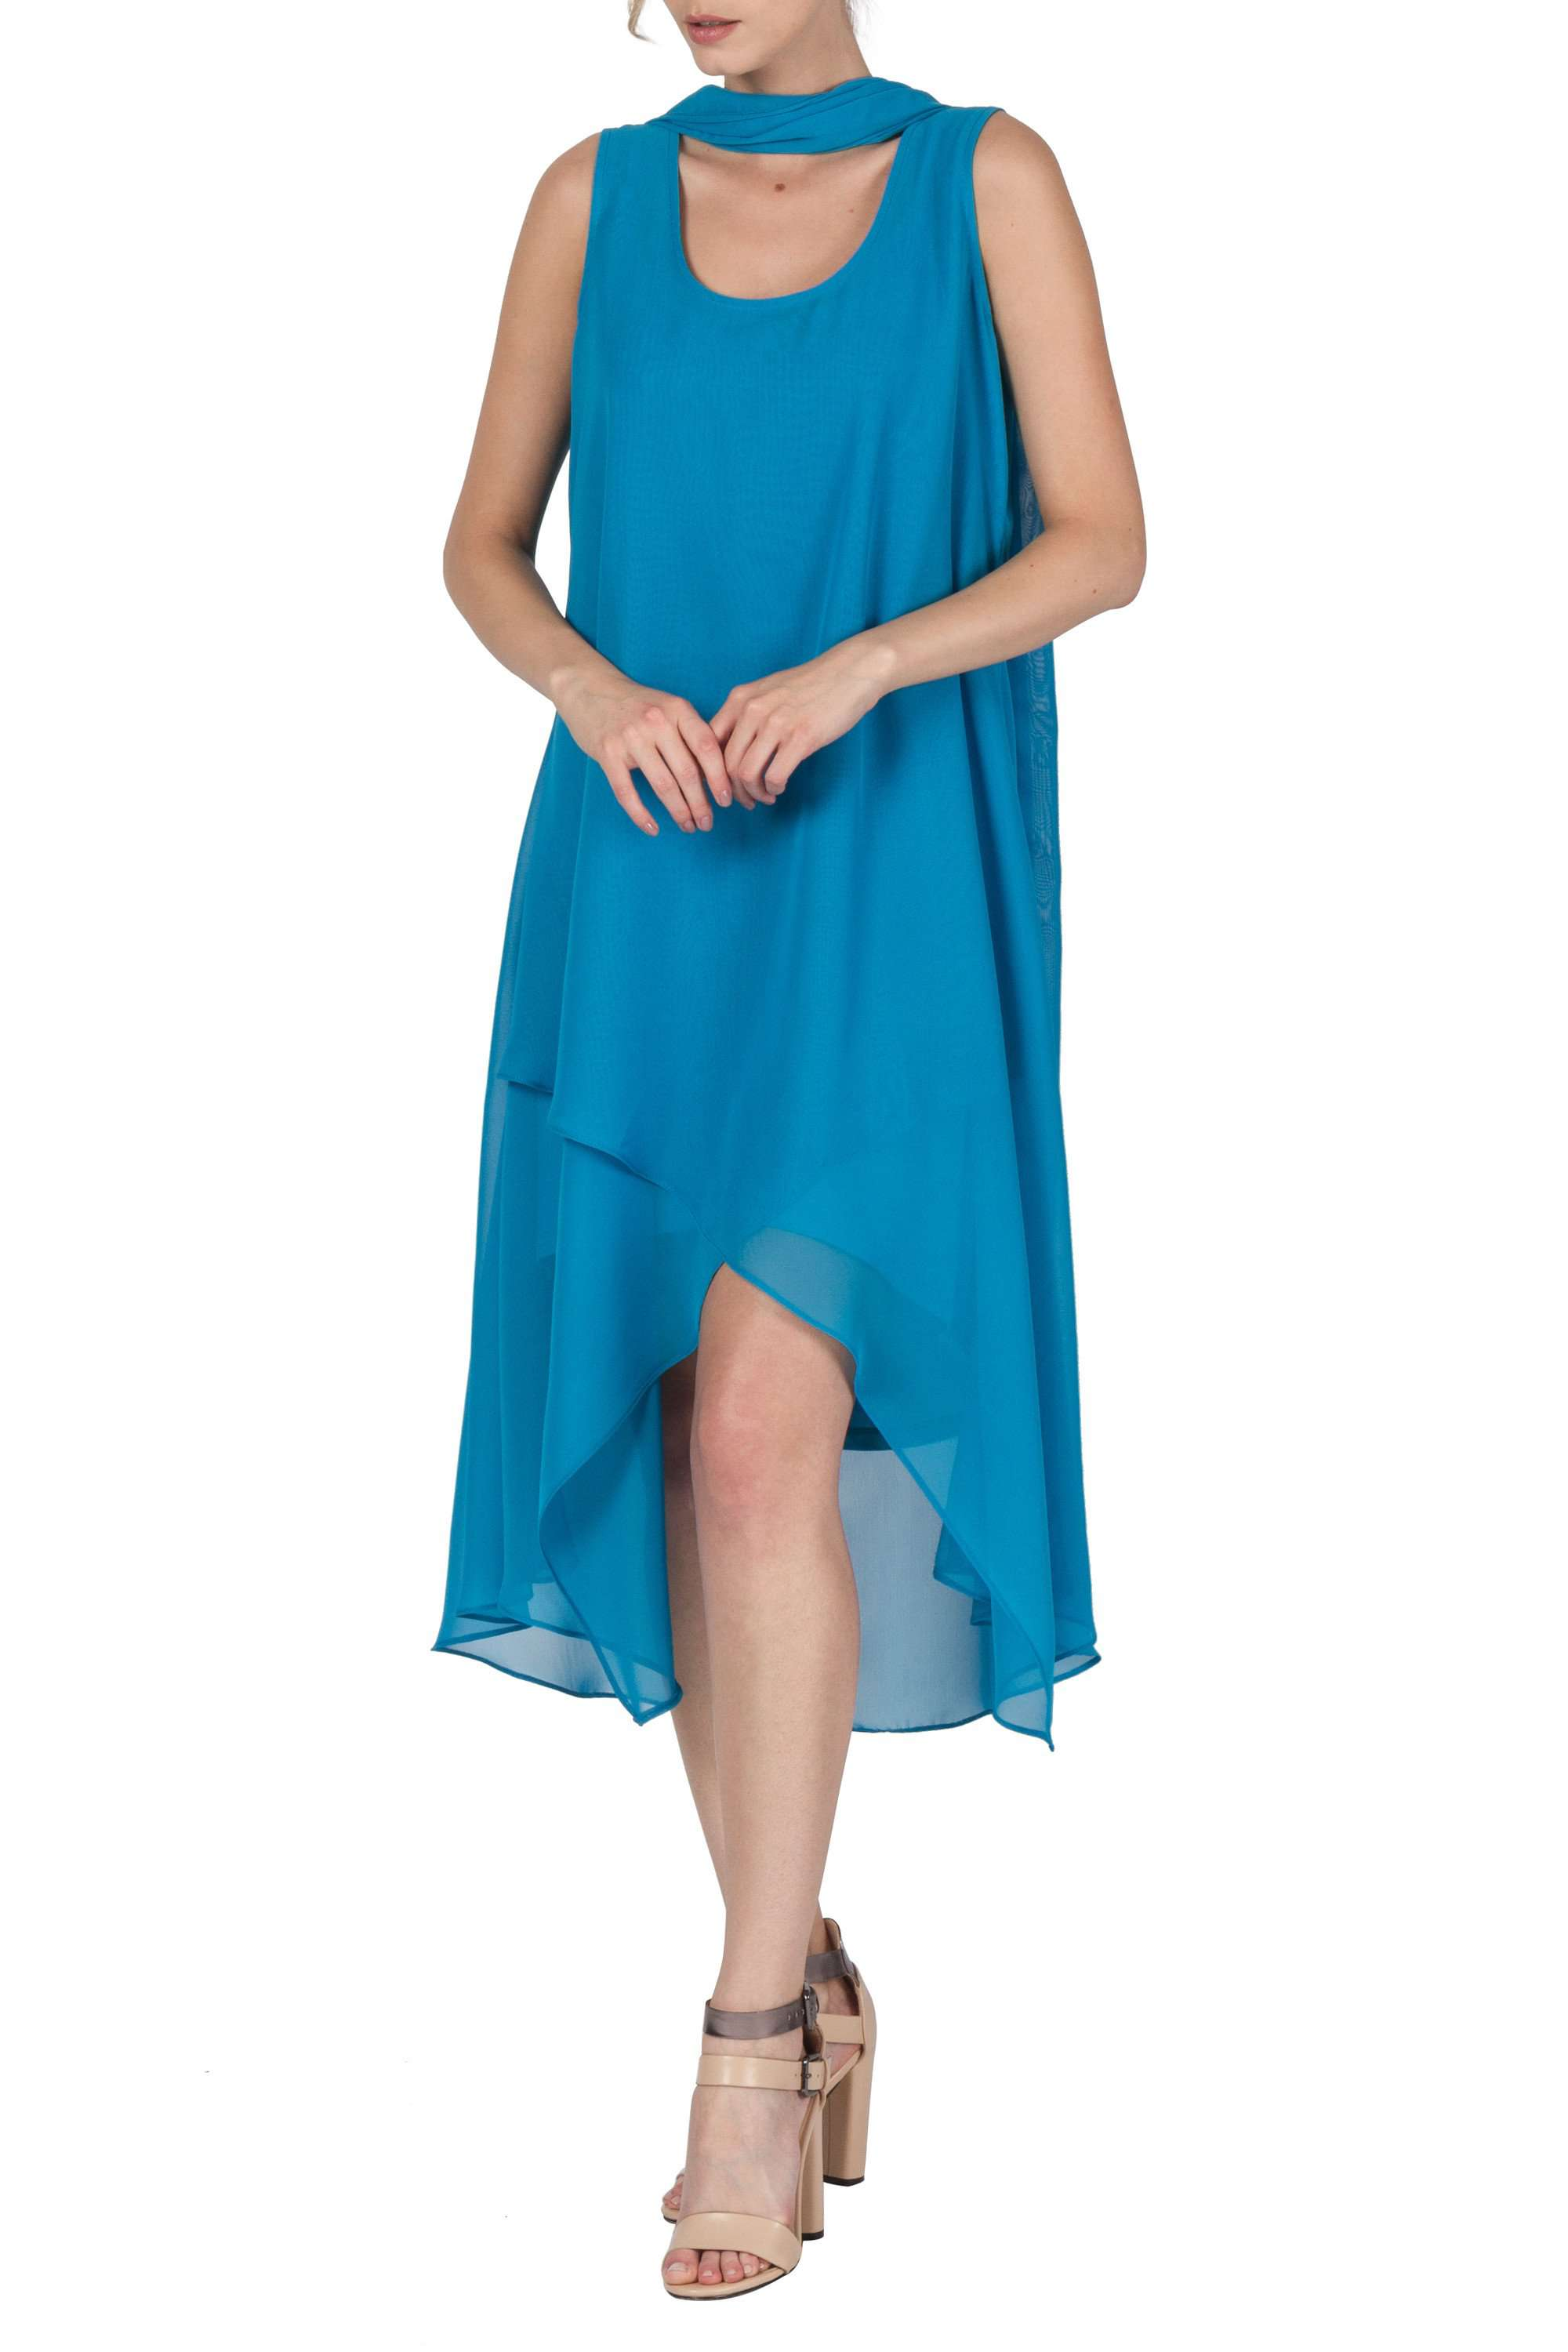 Dress Turquoise Chiffon for Special Events